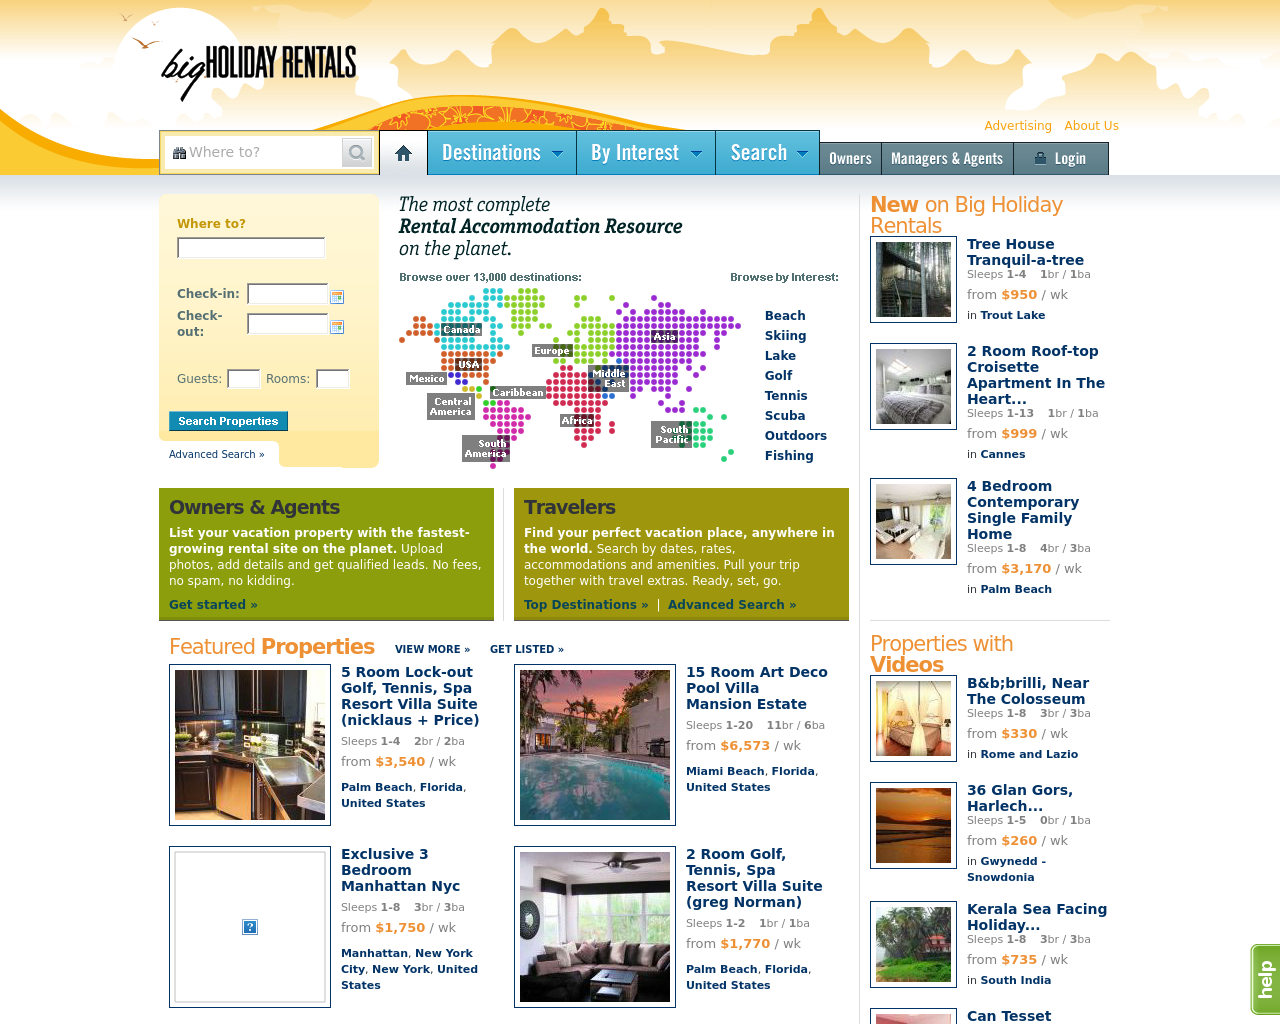 Big-Holiday-Rentals-Advertising-Reviews-Pricing